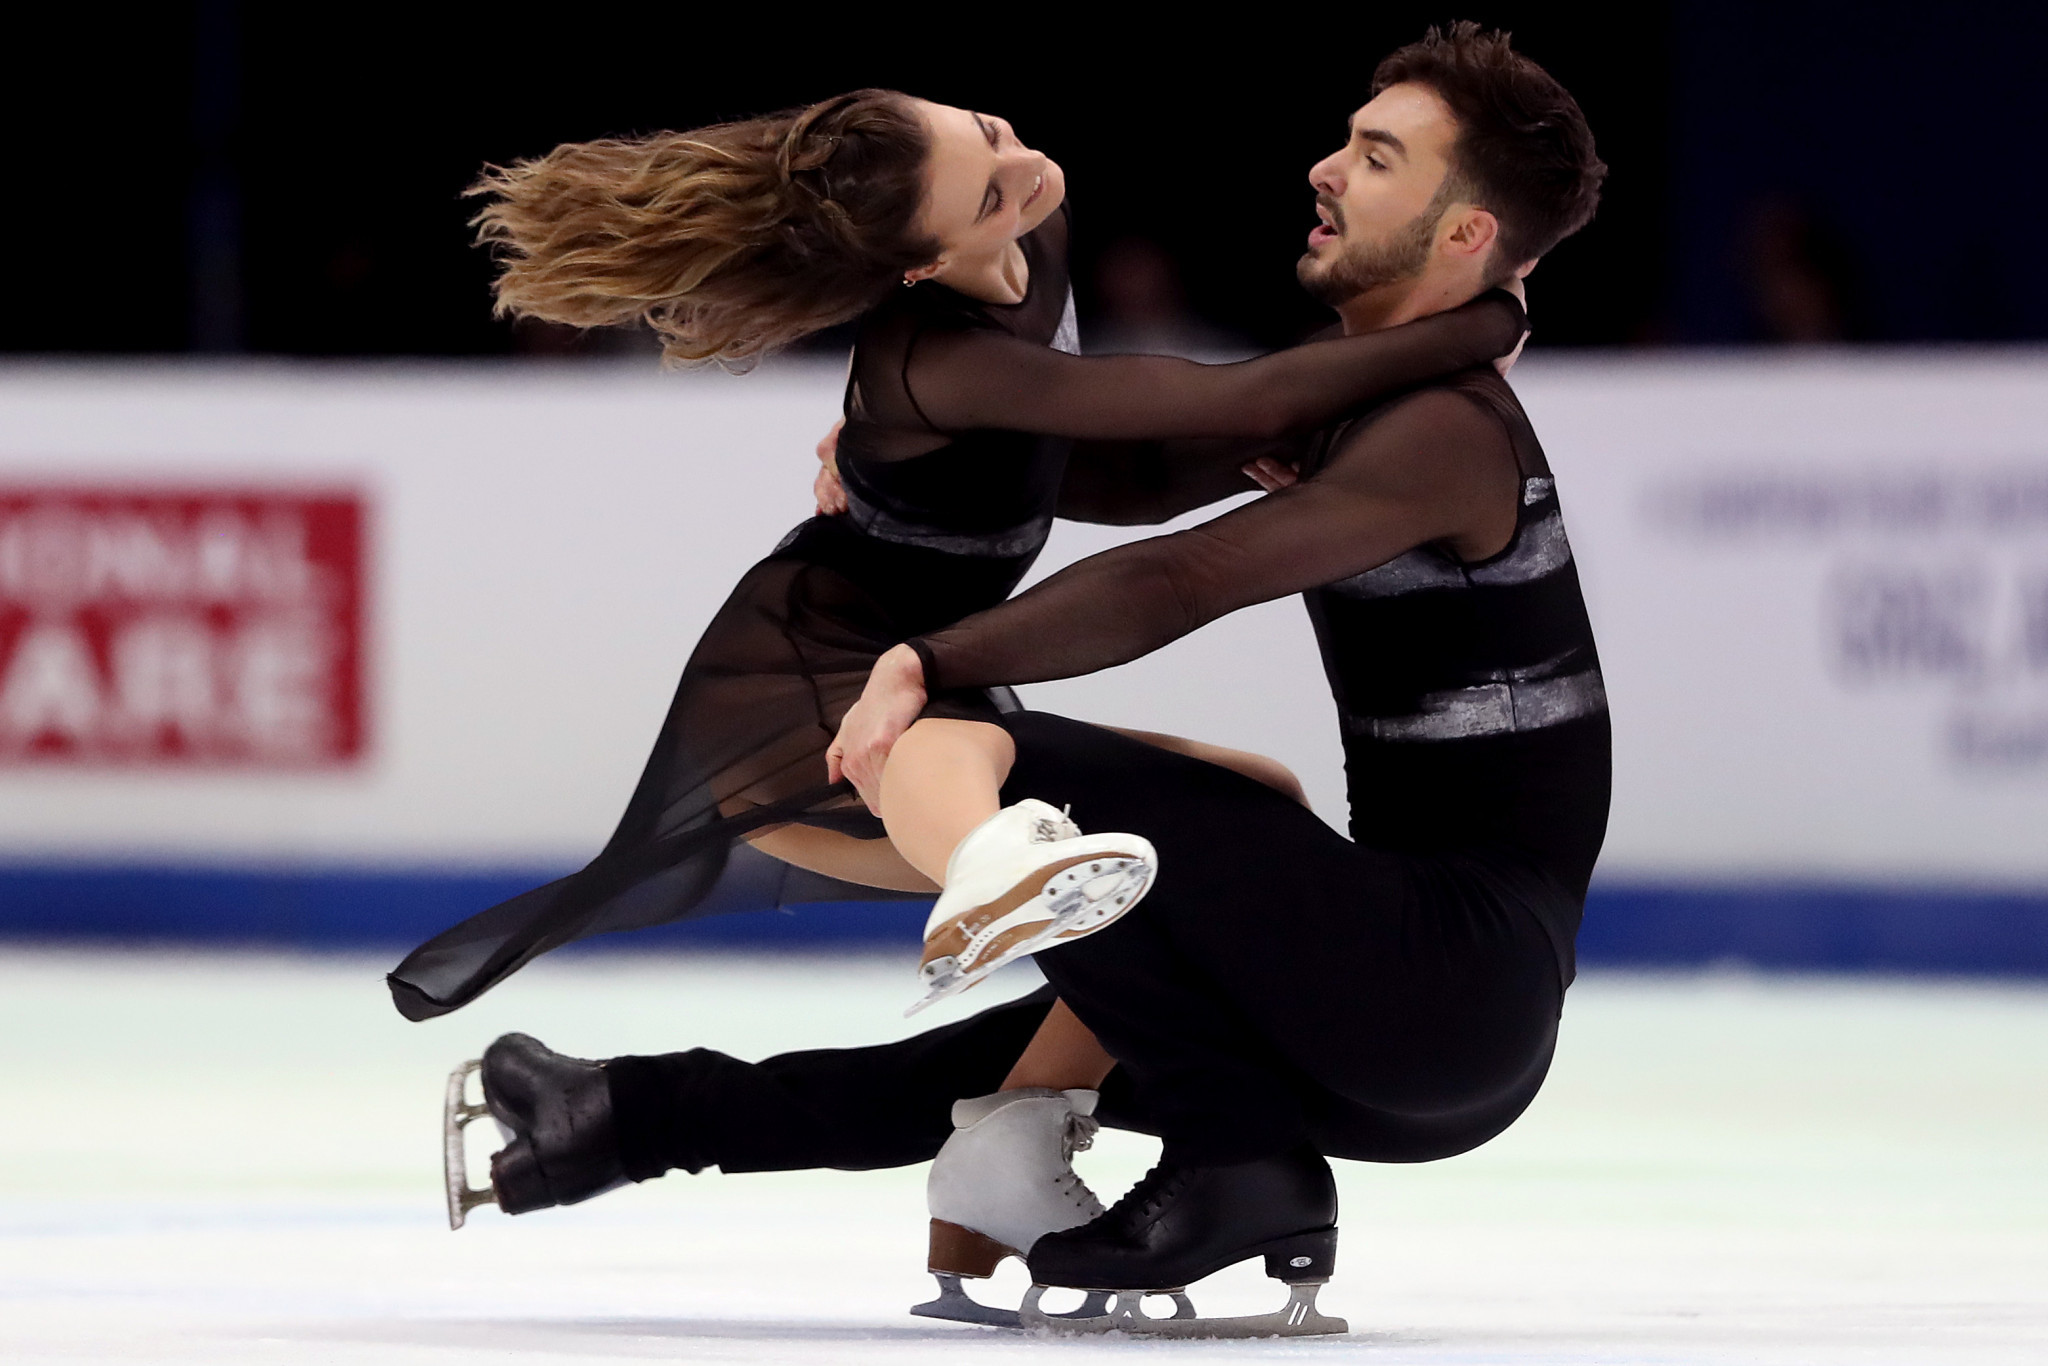 Four-time world champions among stellar cast for live ice dancing training